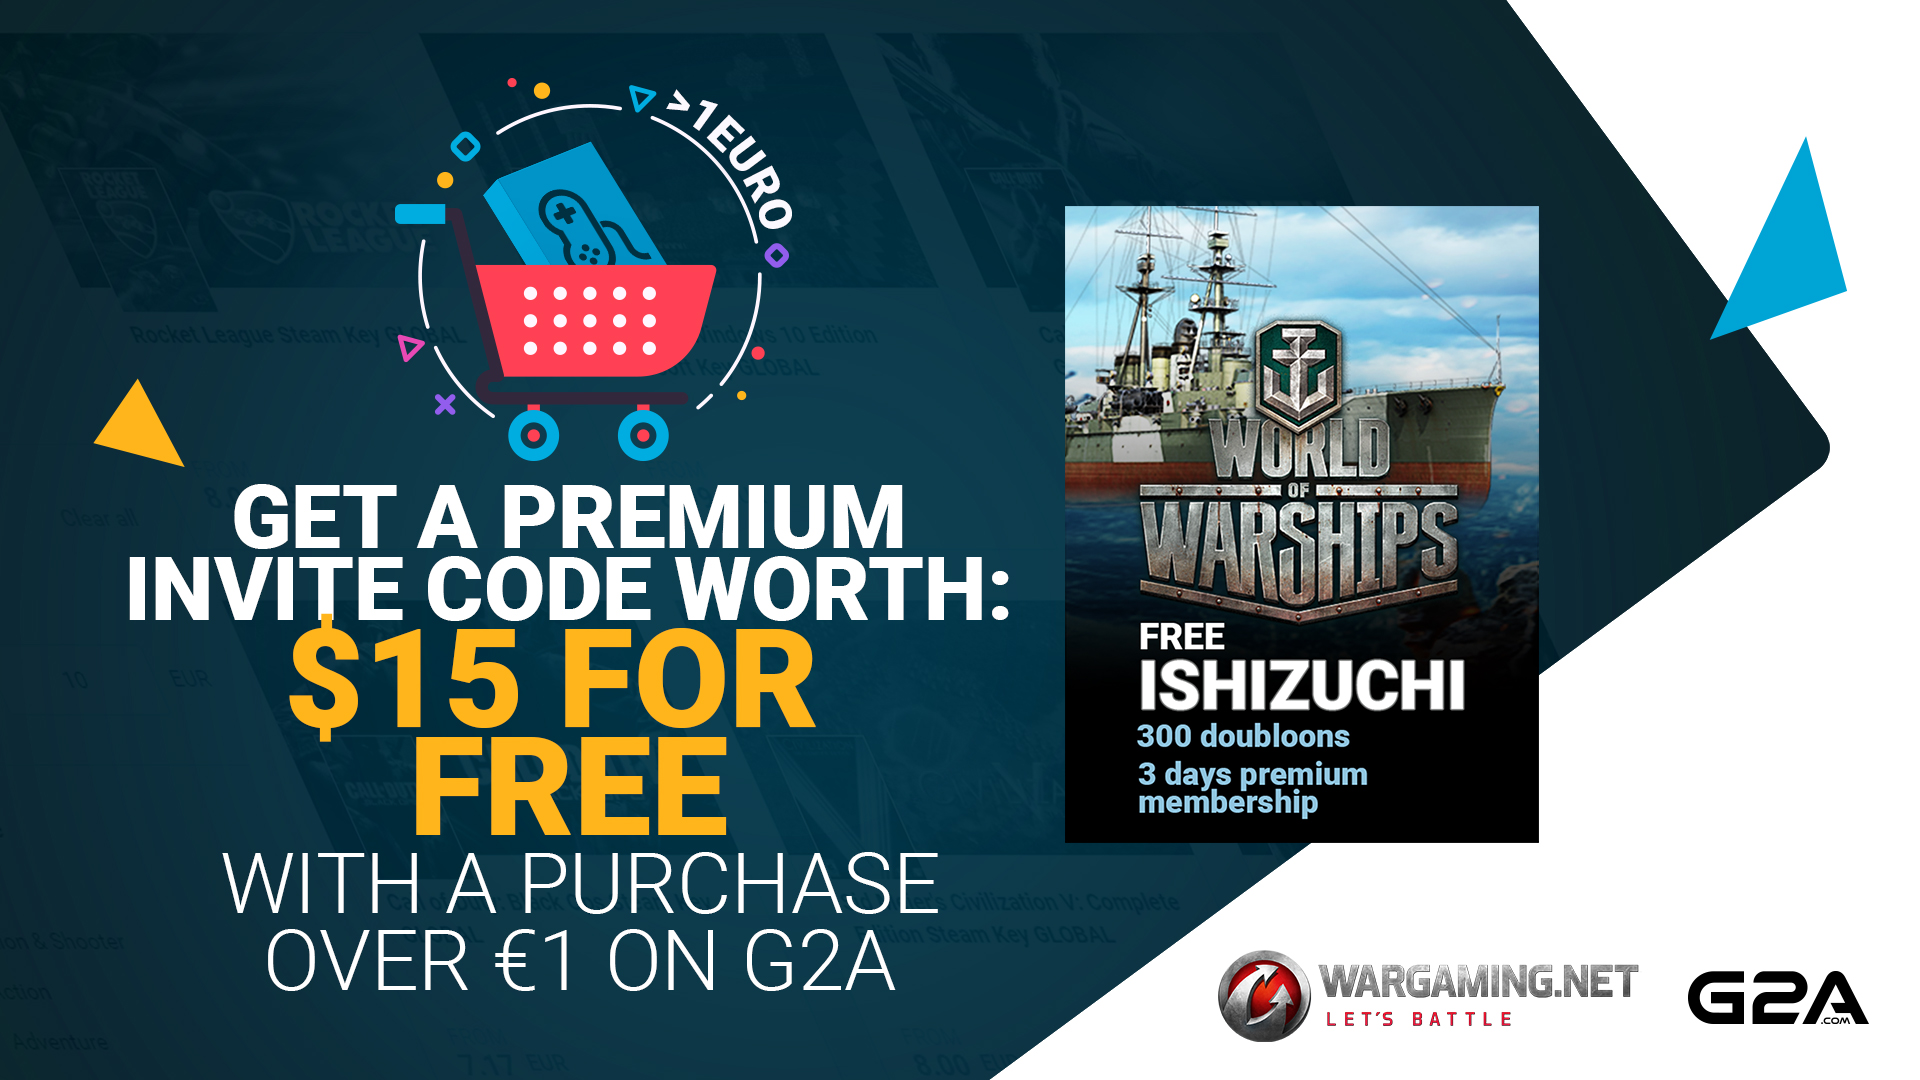 Wargaming teams up with G2A to offer exclusive World of Warships content